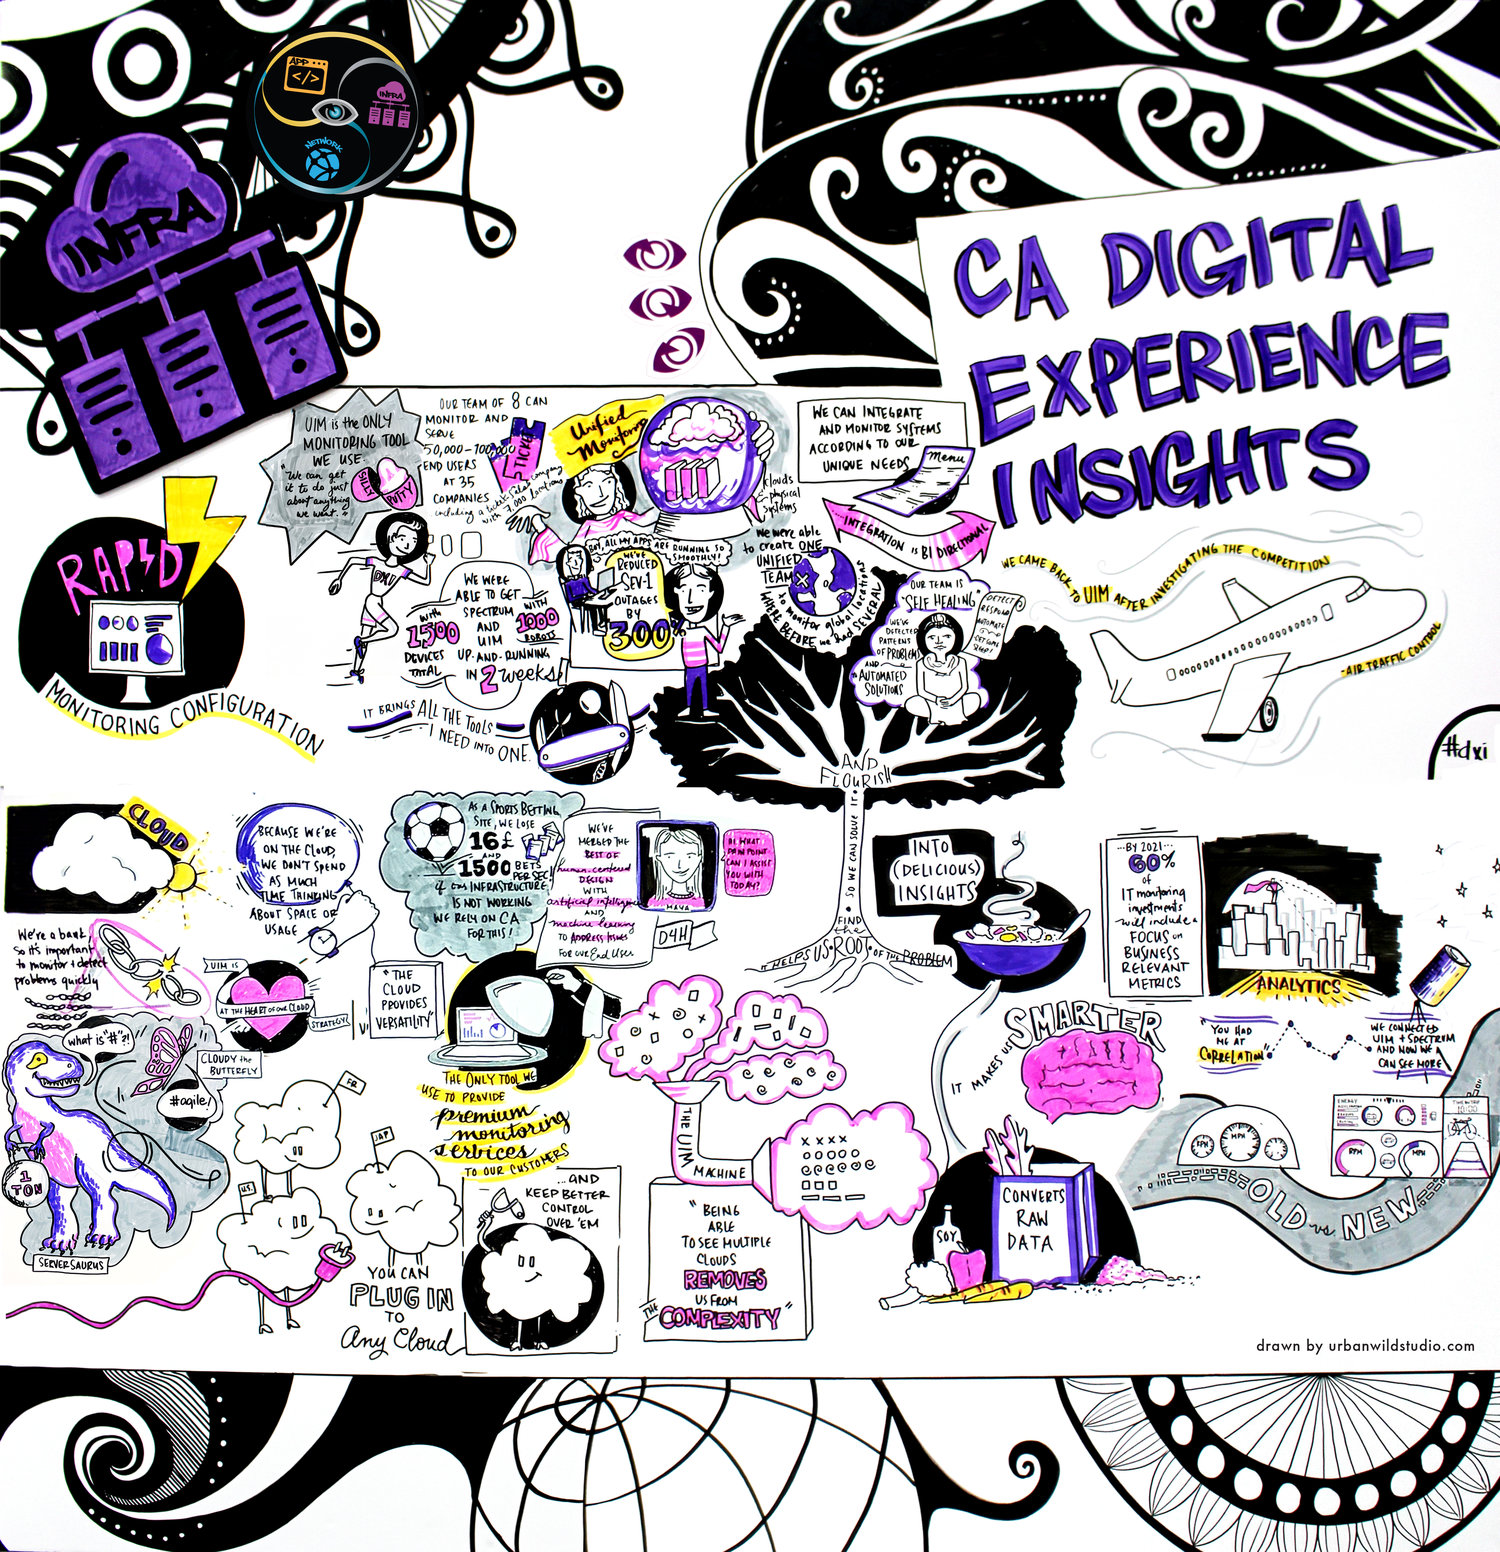 UrbanWildStudio_GraphicRecording_CAWorld17_Infra_1of3.jpg